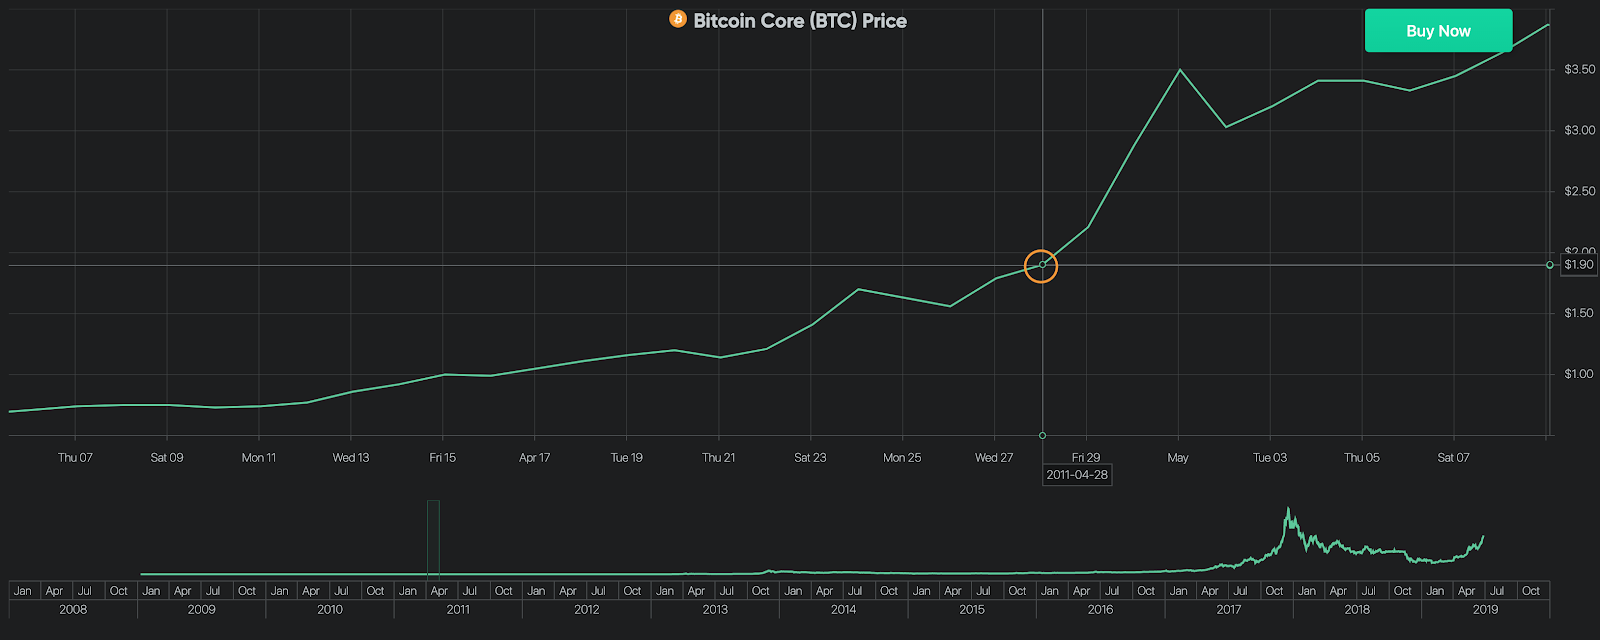 Bitcoin Price on April 28, 2011